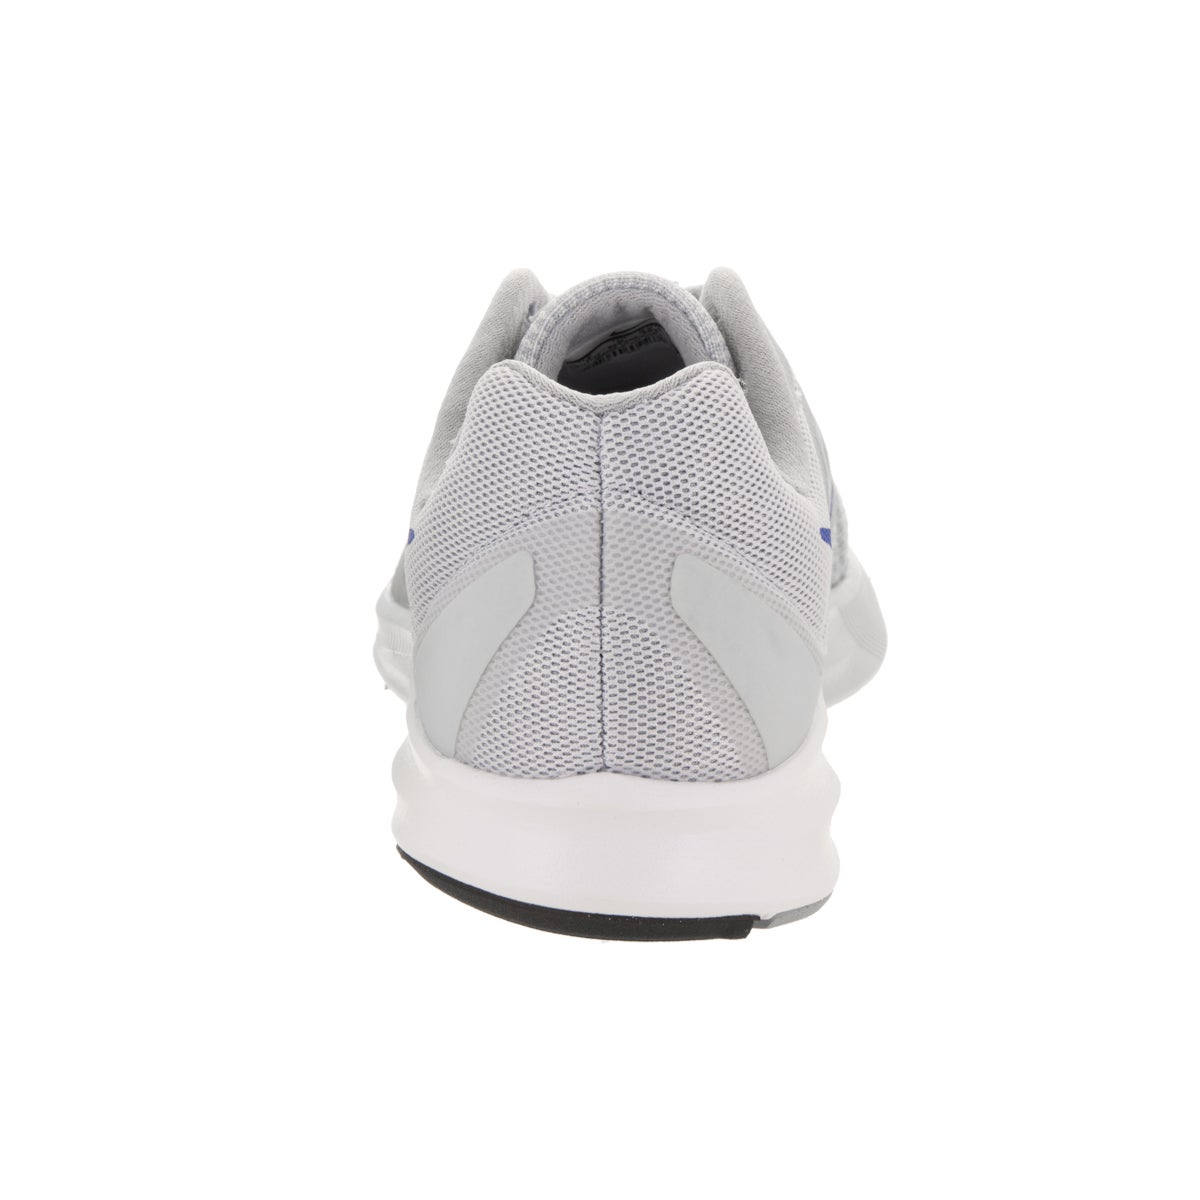 a7cce3258bbd8b Shop Nike Men s Downshifter 7 Running Shoe - Free Shipping Today -  Overstock - 16431842